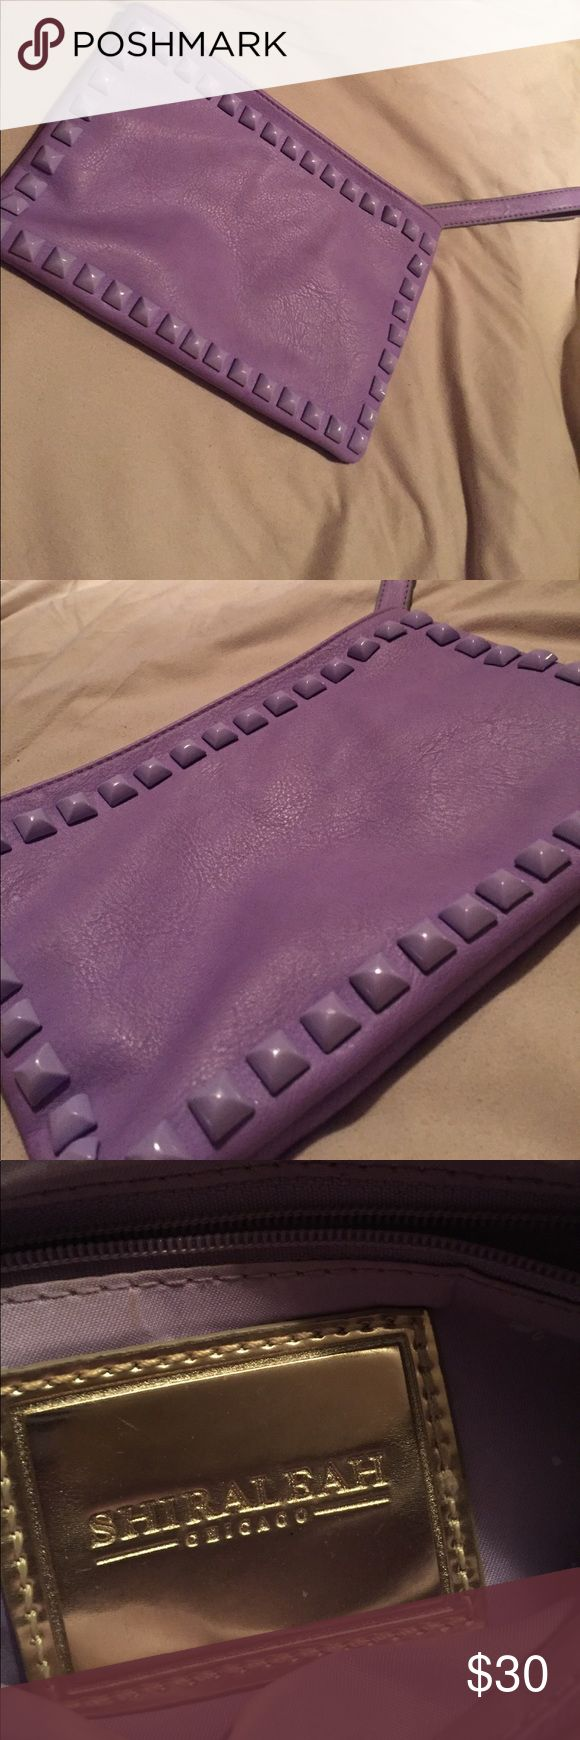 Shiraleah Vegan Leather Purple Clutch 💜 Vegan leather purple studded clutch! Used once, excellent condition! Zipped inside pocket and two small inside pockets! Perfect for a night out 💟 shiraleah chicago Bags Clutches & Wristlets